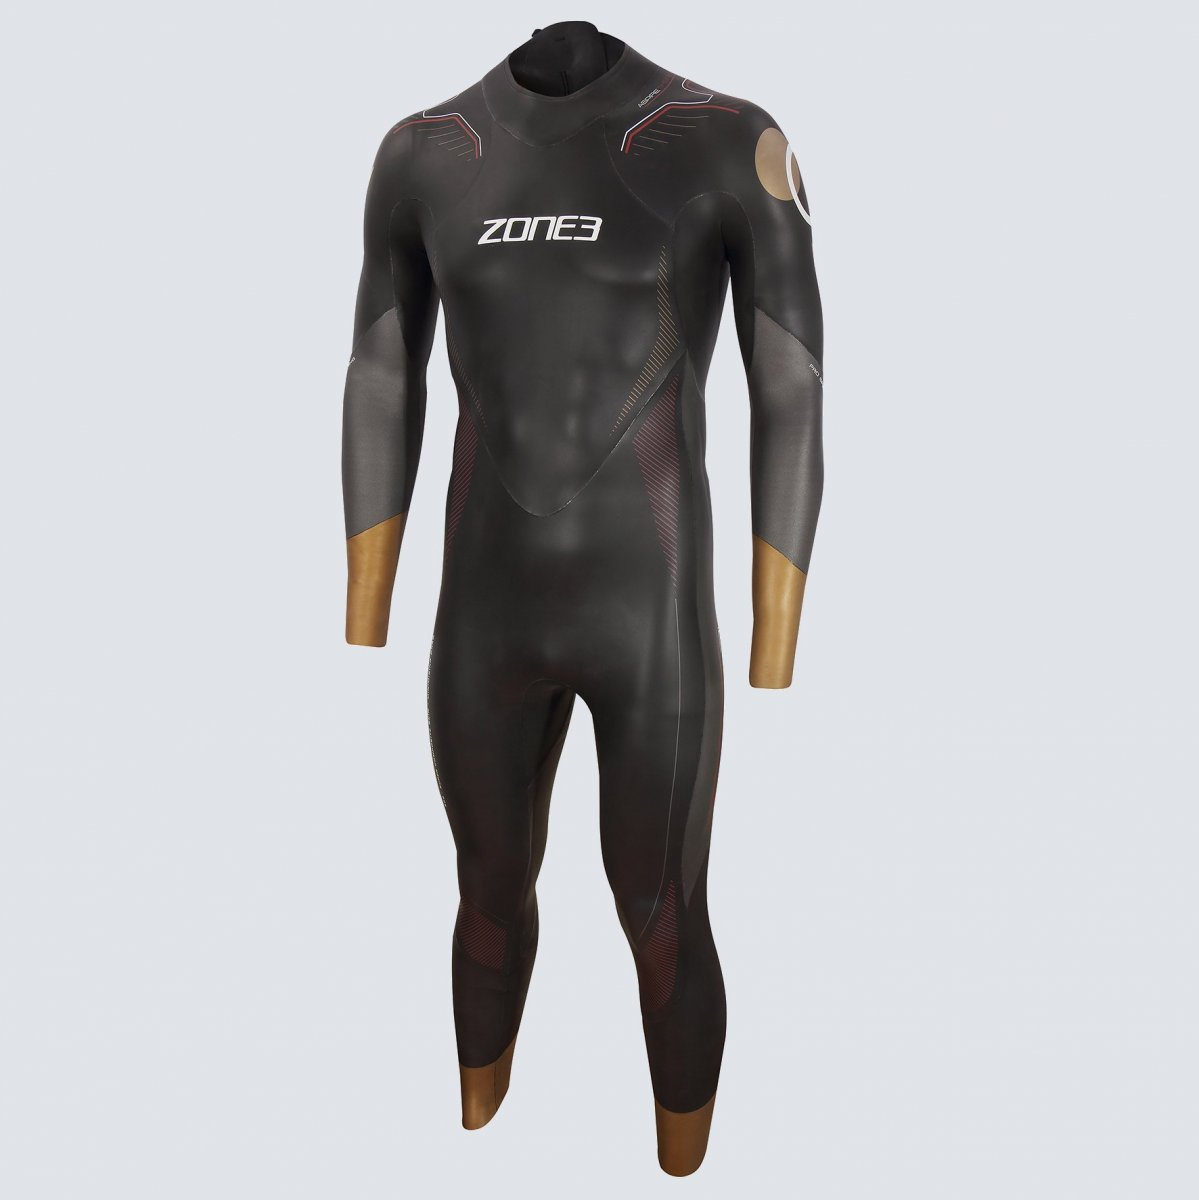 Zone3-Thermal-Aspire-Men-Front